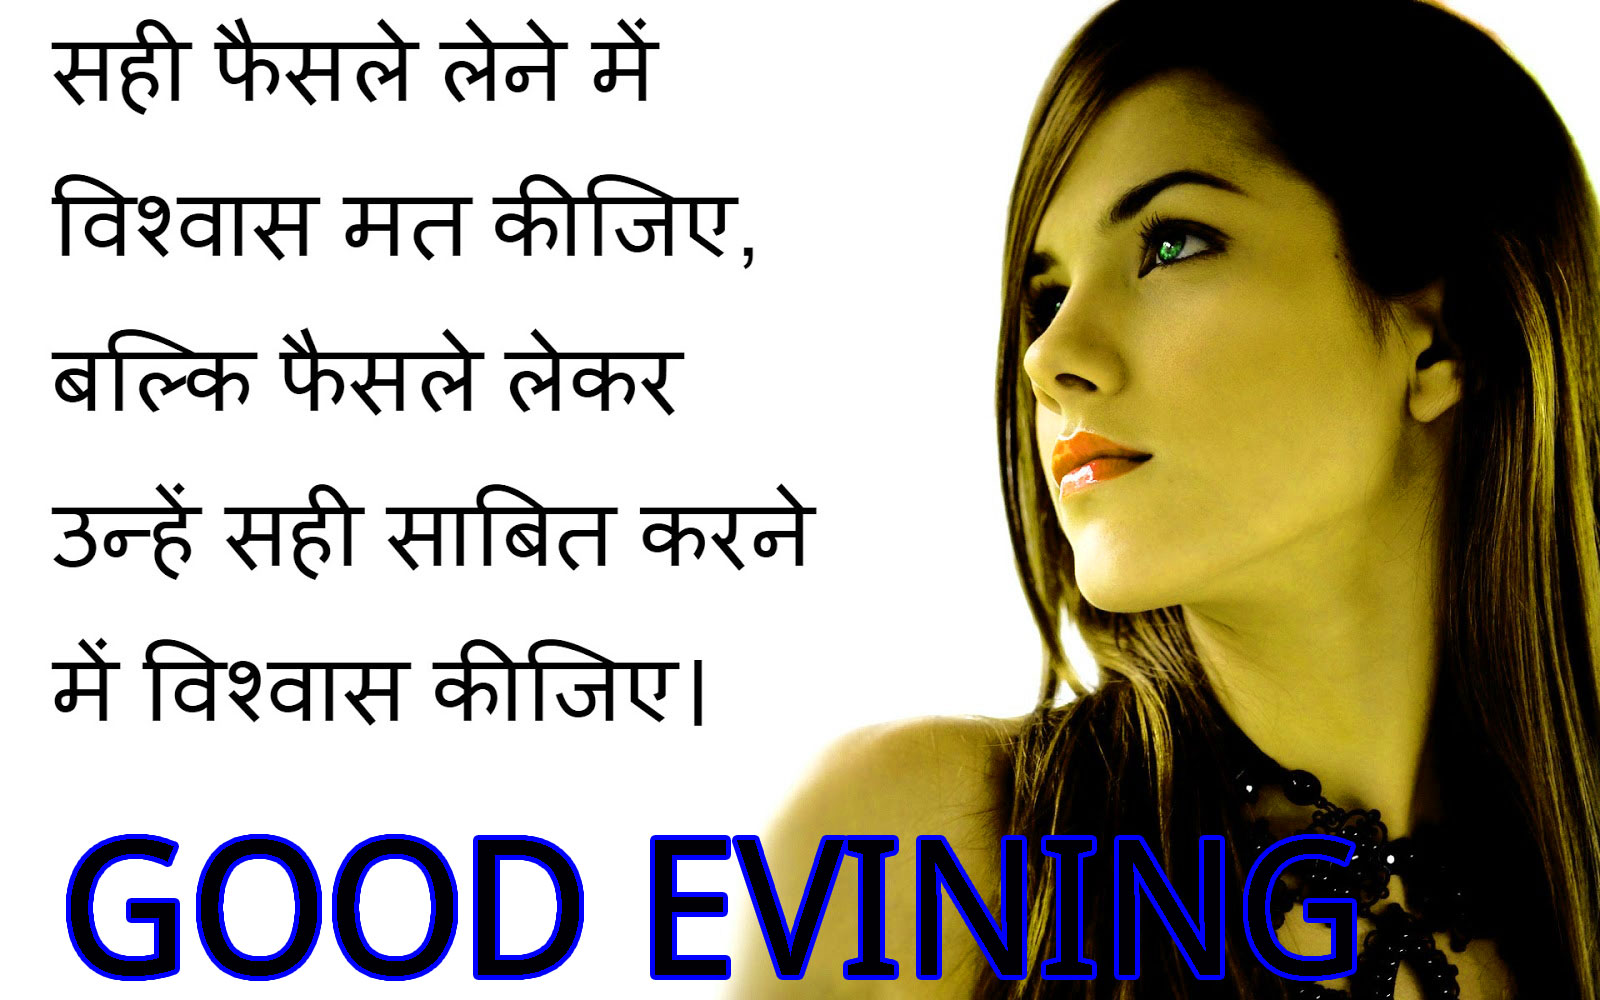 Hindi Good Evening Images With Hindi Shayari Pics Pictures Photo HD